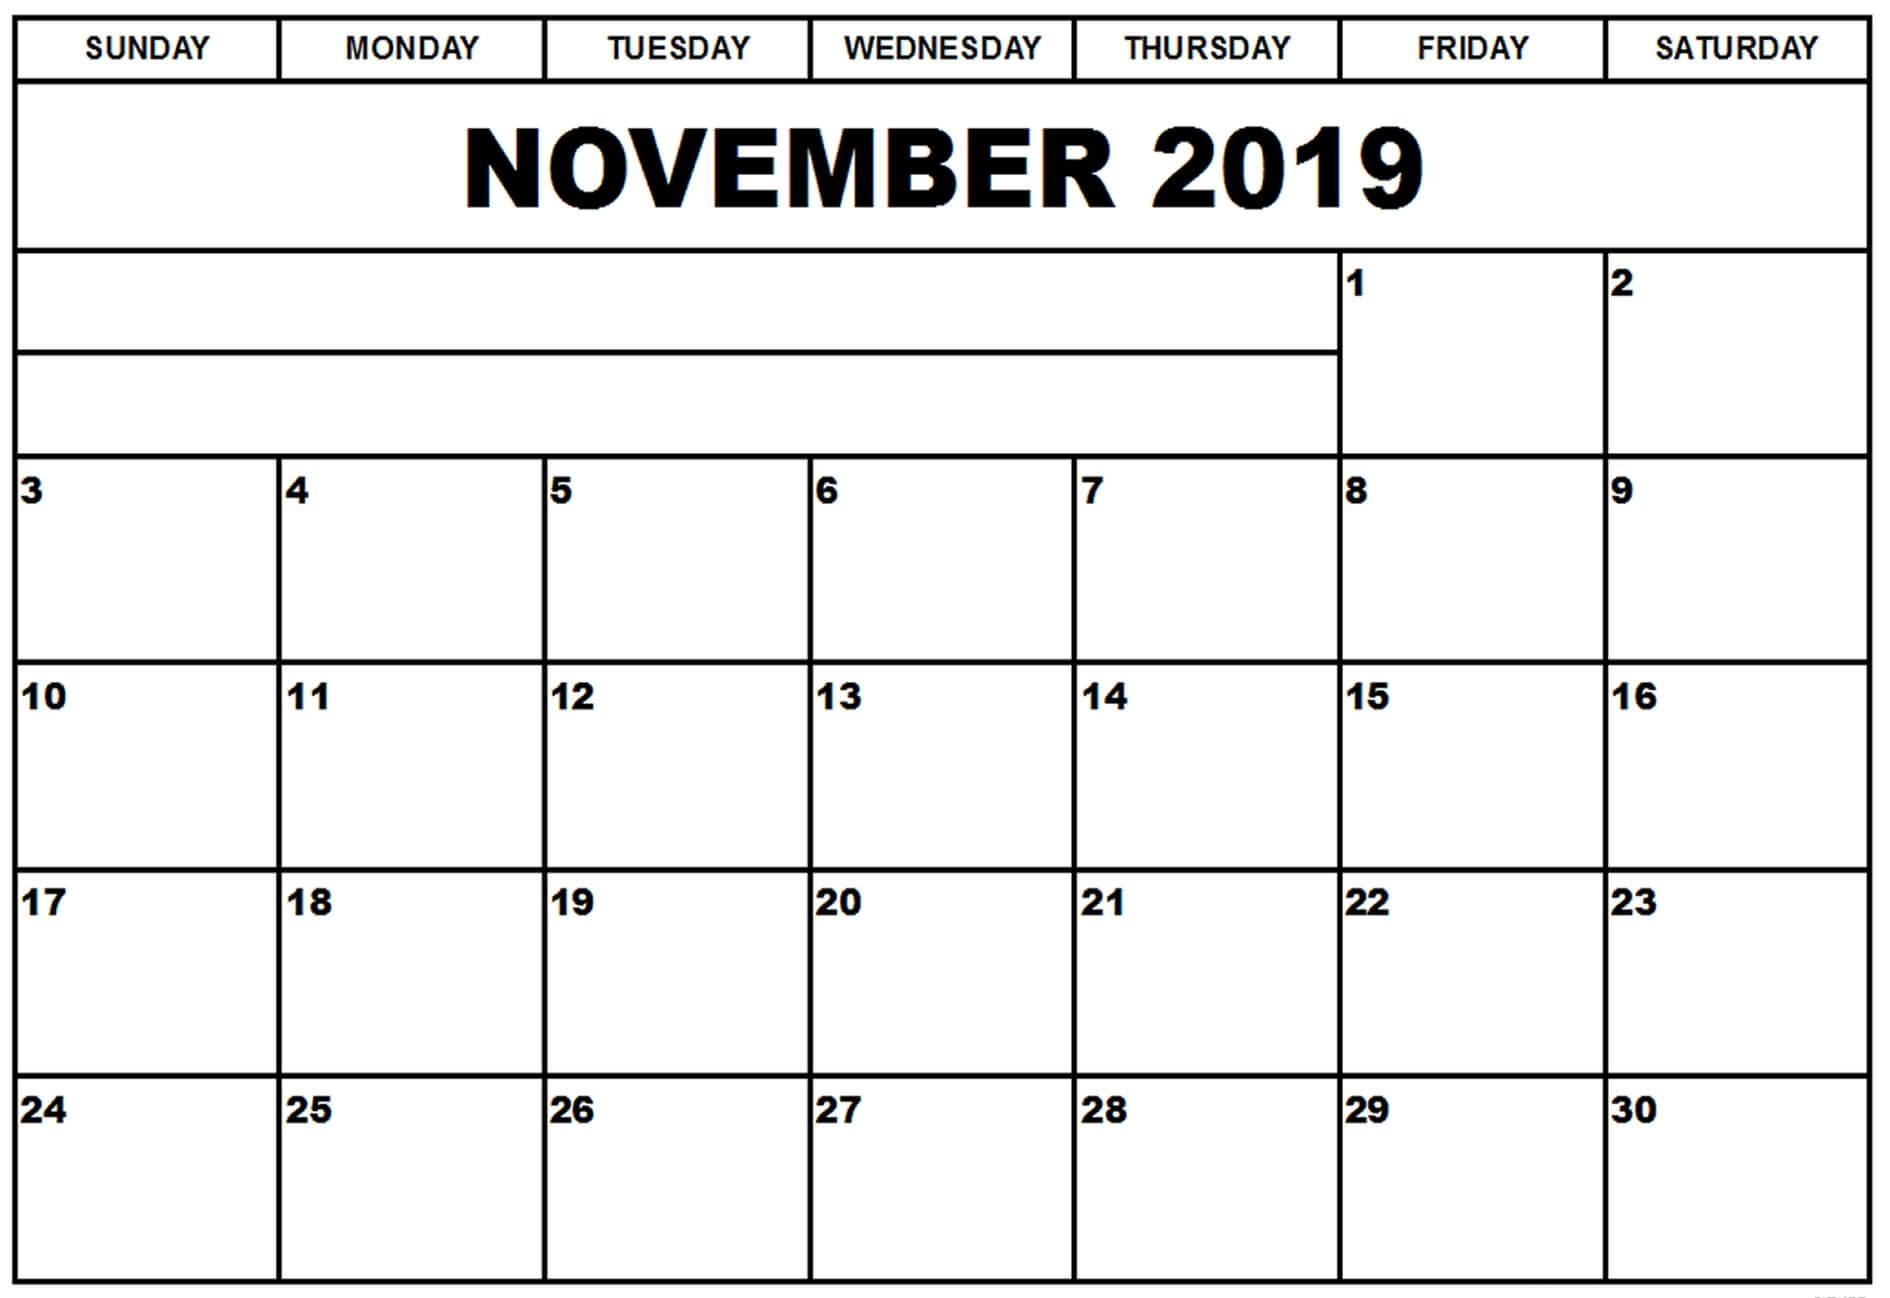 November 2019 Calendar In Excel Template